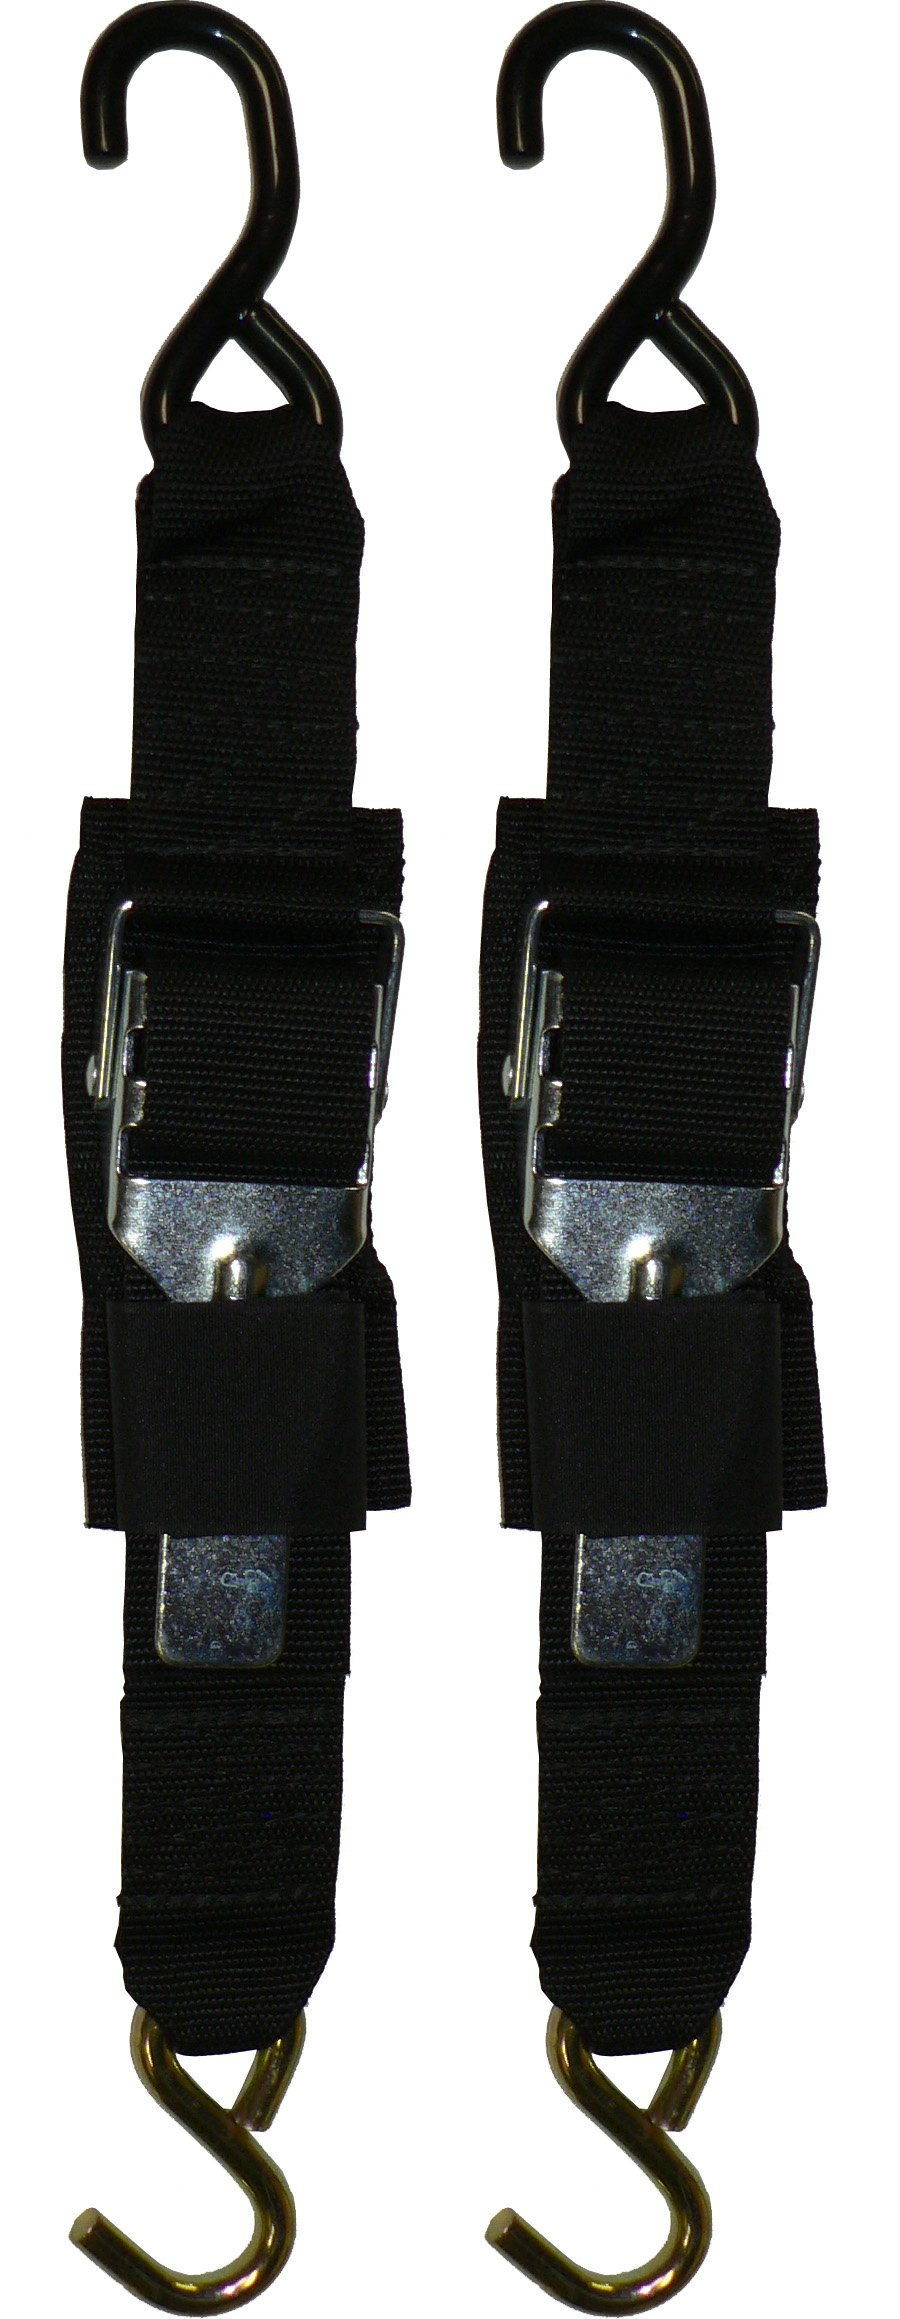 Rod Saver Paddle Buckle 2 inch Trailer Tie-Downs (2 Feet), Pair